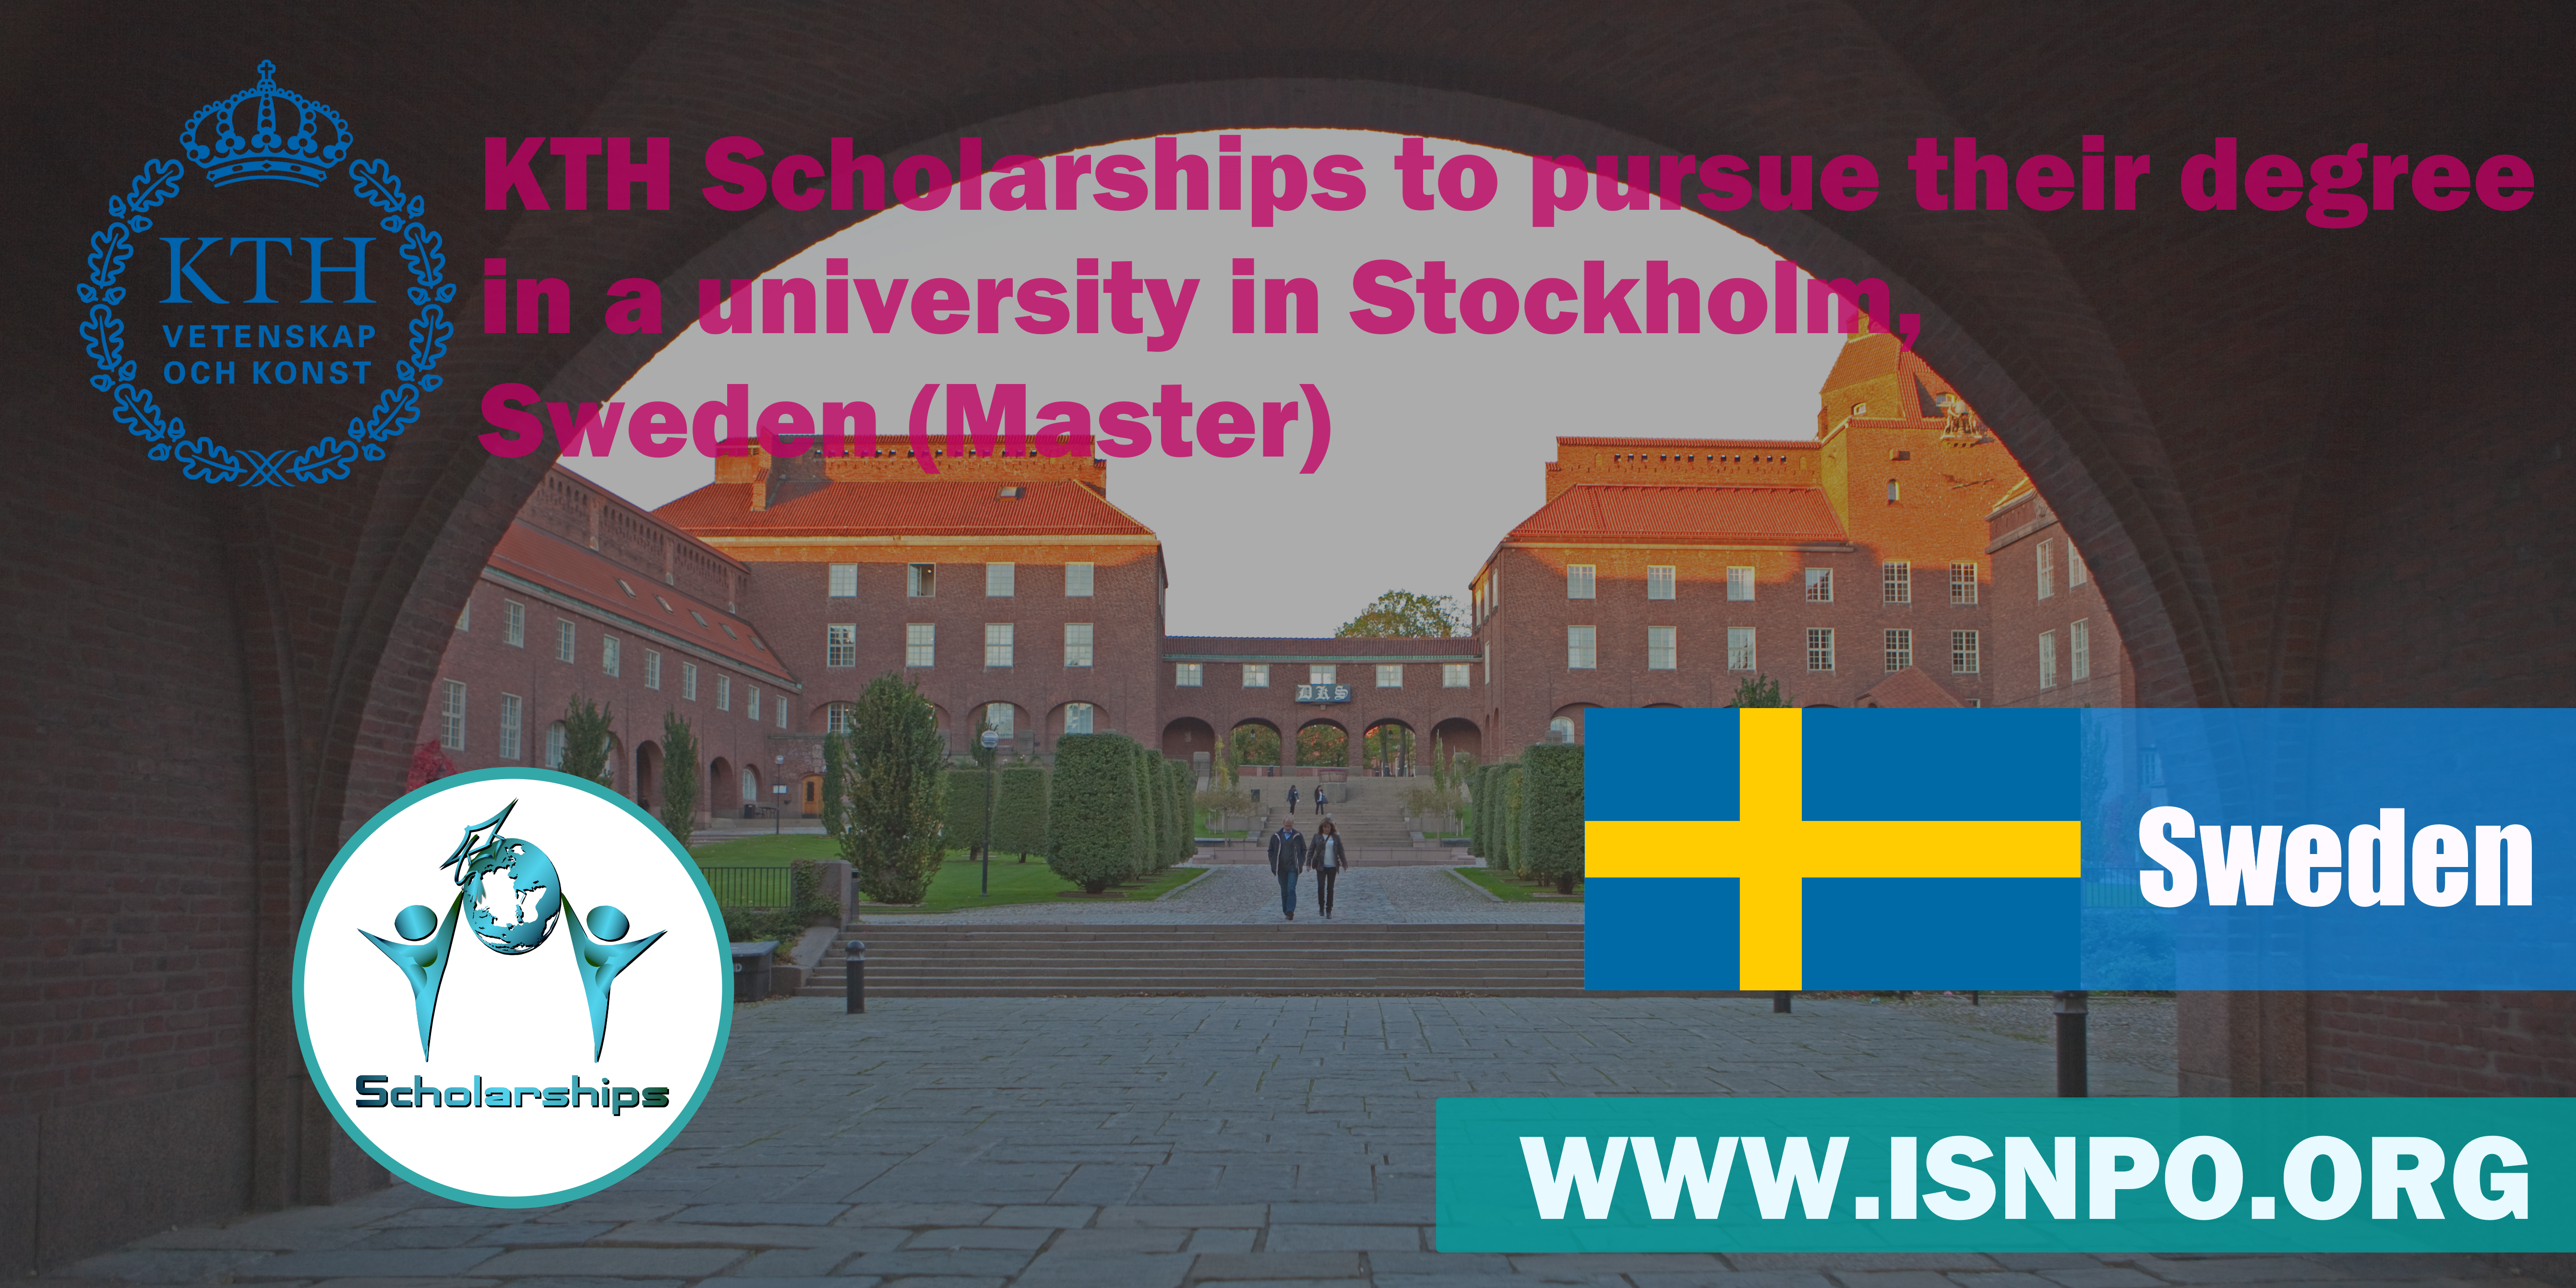 KTH Scholarships to pursue their degree in an university in Stockholm, Sweden